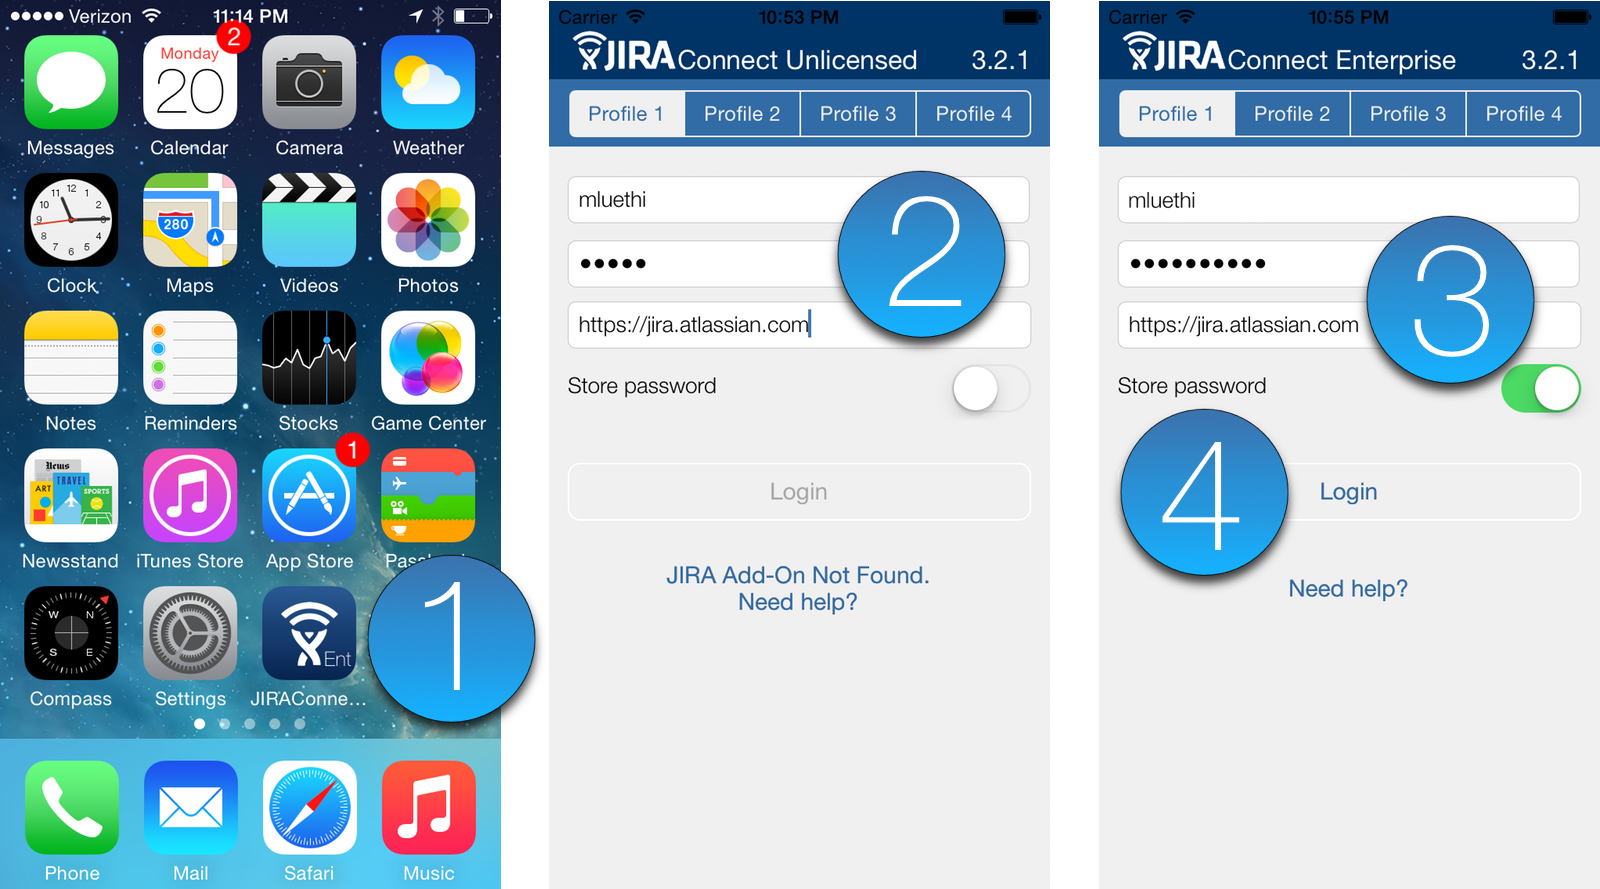 Log in to JIRA Connect